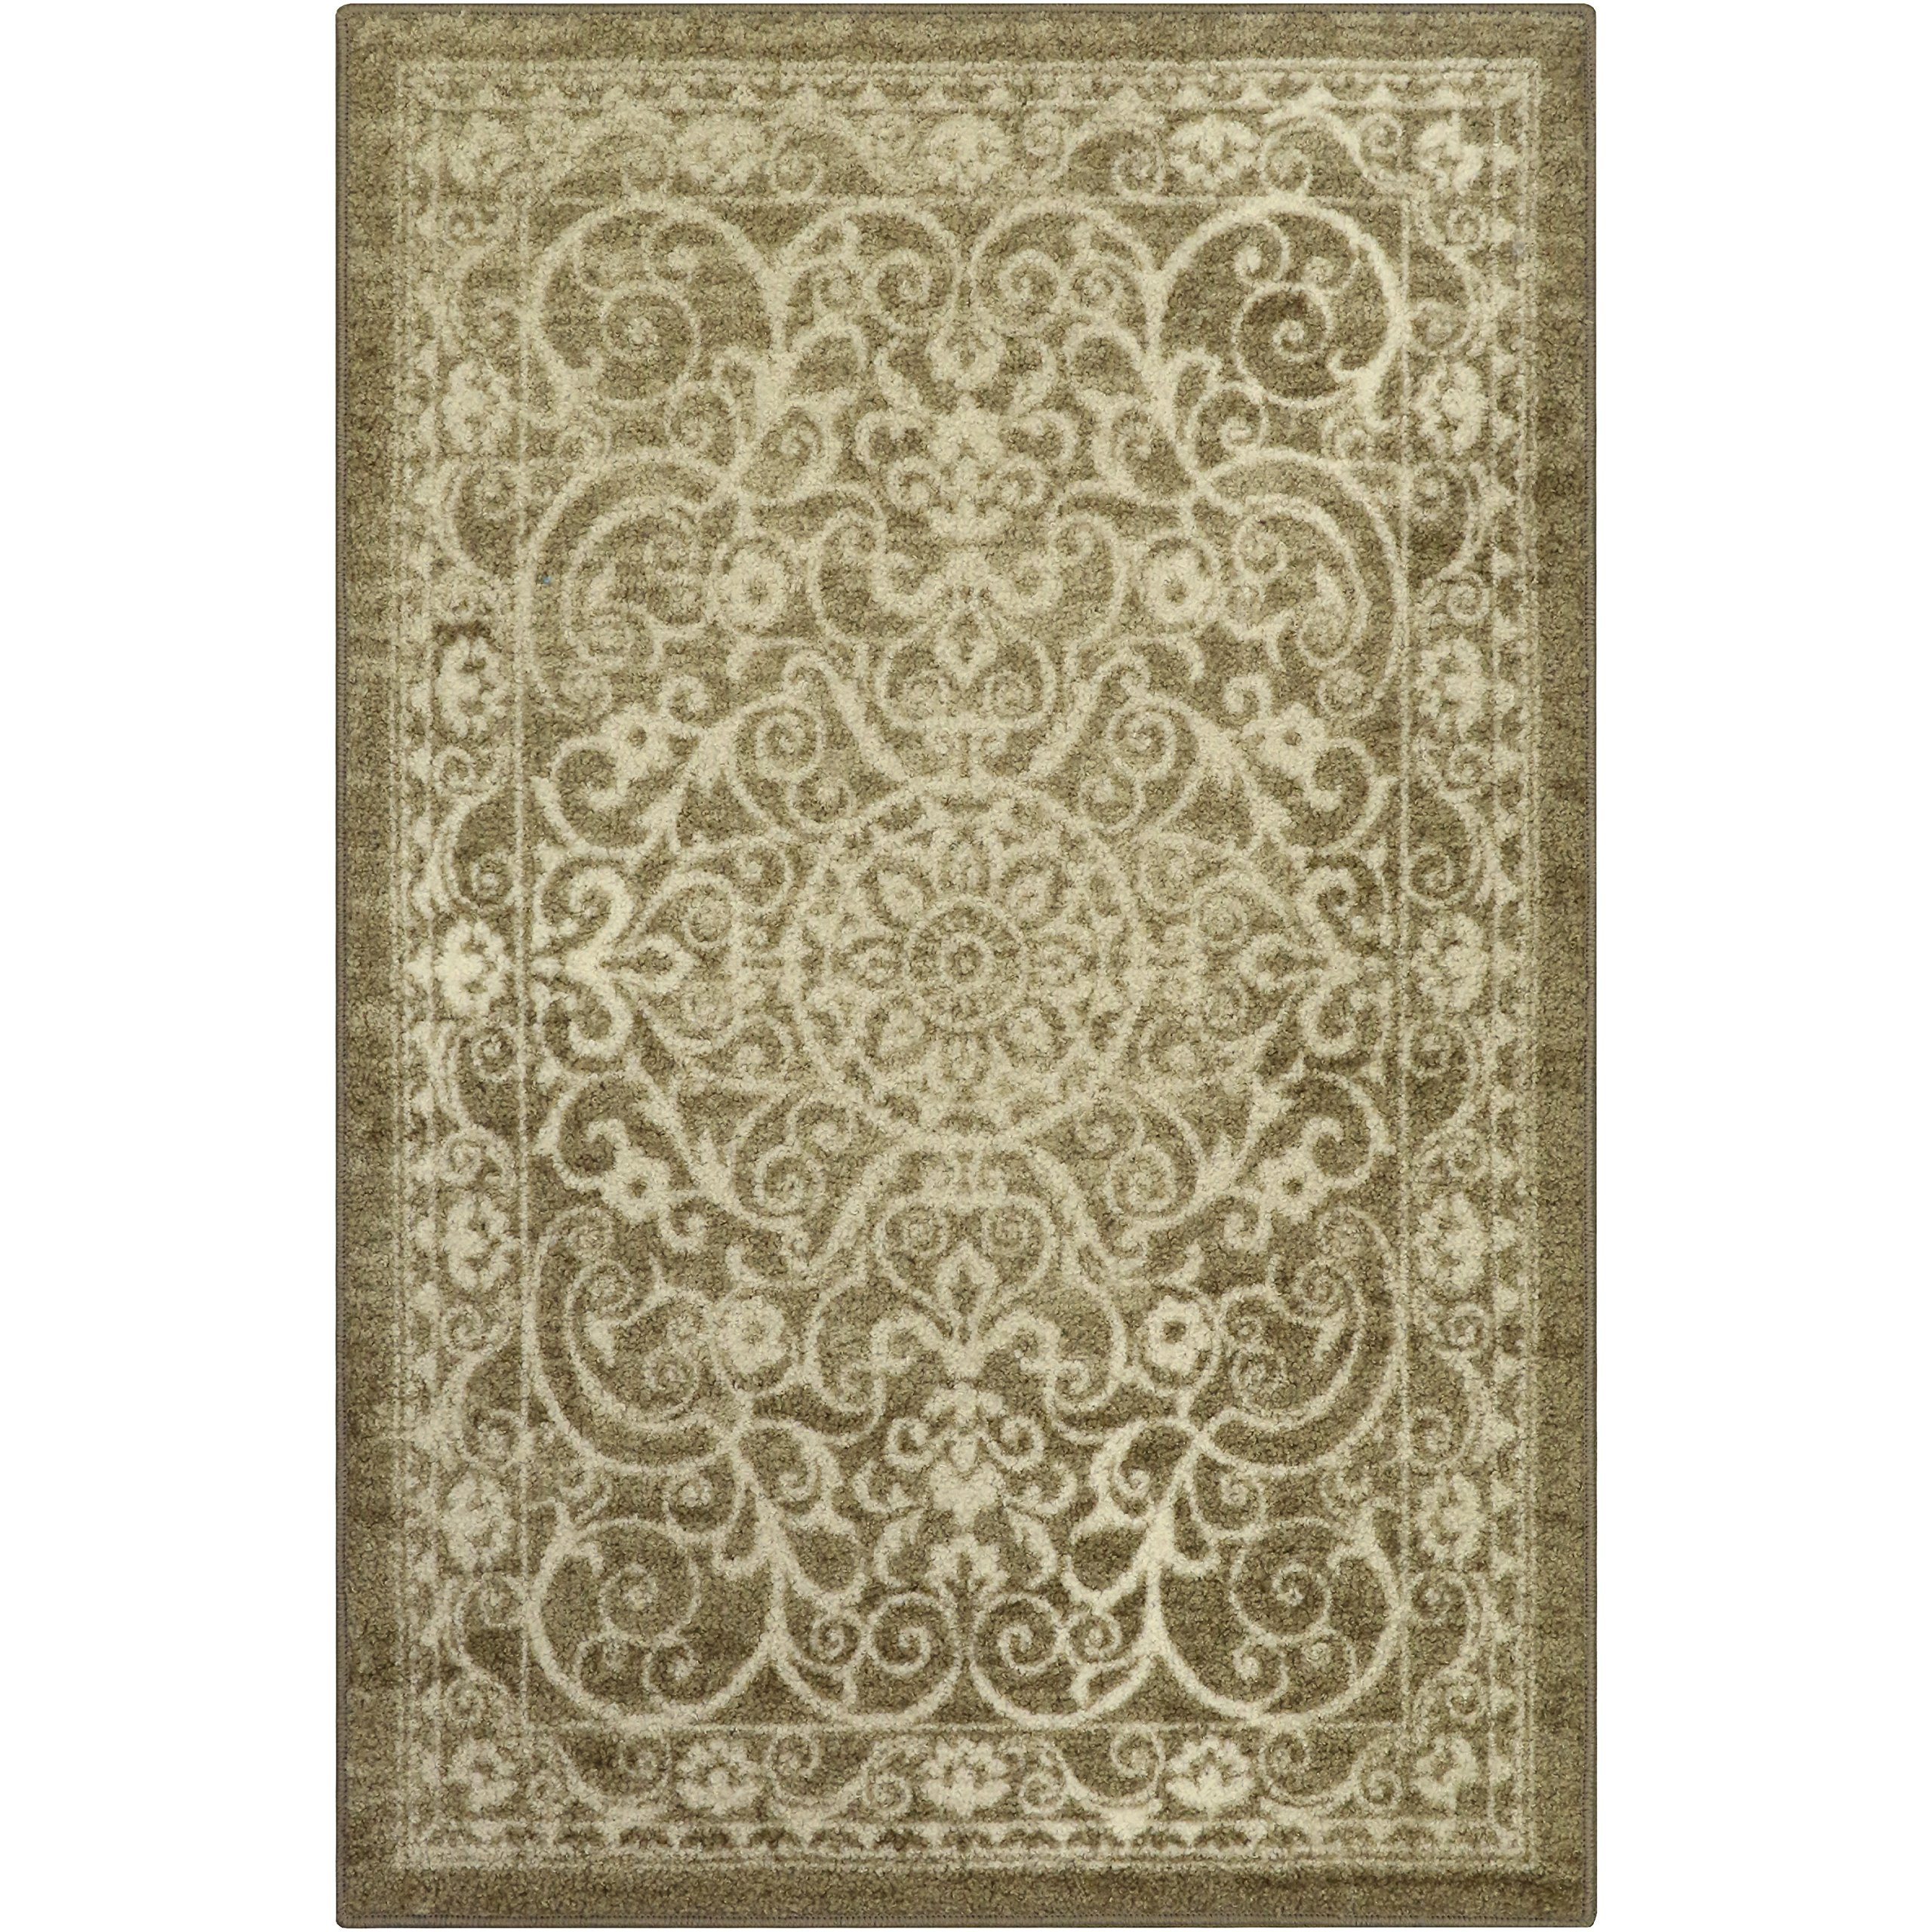 Maples Rugs Area Rugs, [Made in USA][Pelham] 7' x 10' Non Slip Padded Large Rug for Living Room, Bedroom, and Dining Room - Khaki